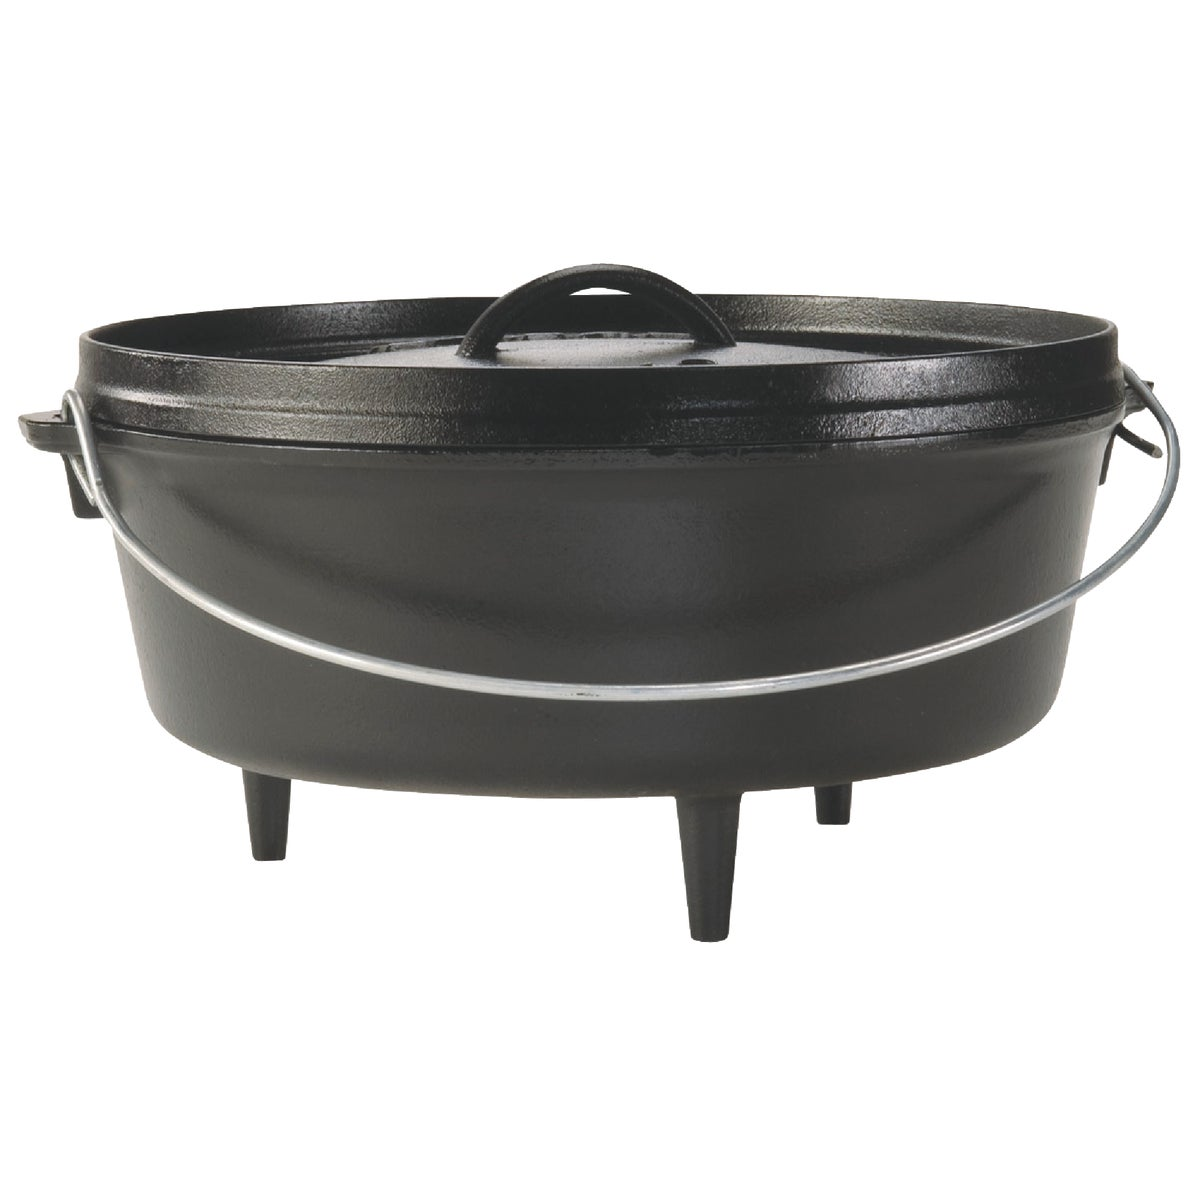 8QT CAMP OVEN - L12DC03 by Lodge Mfg Co